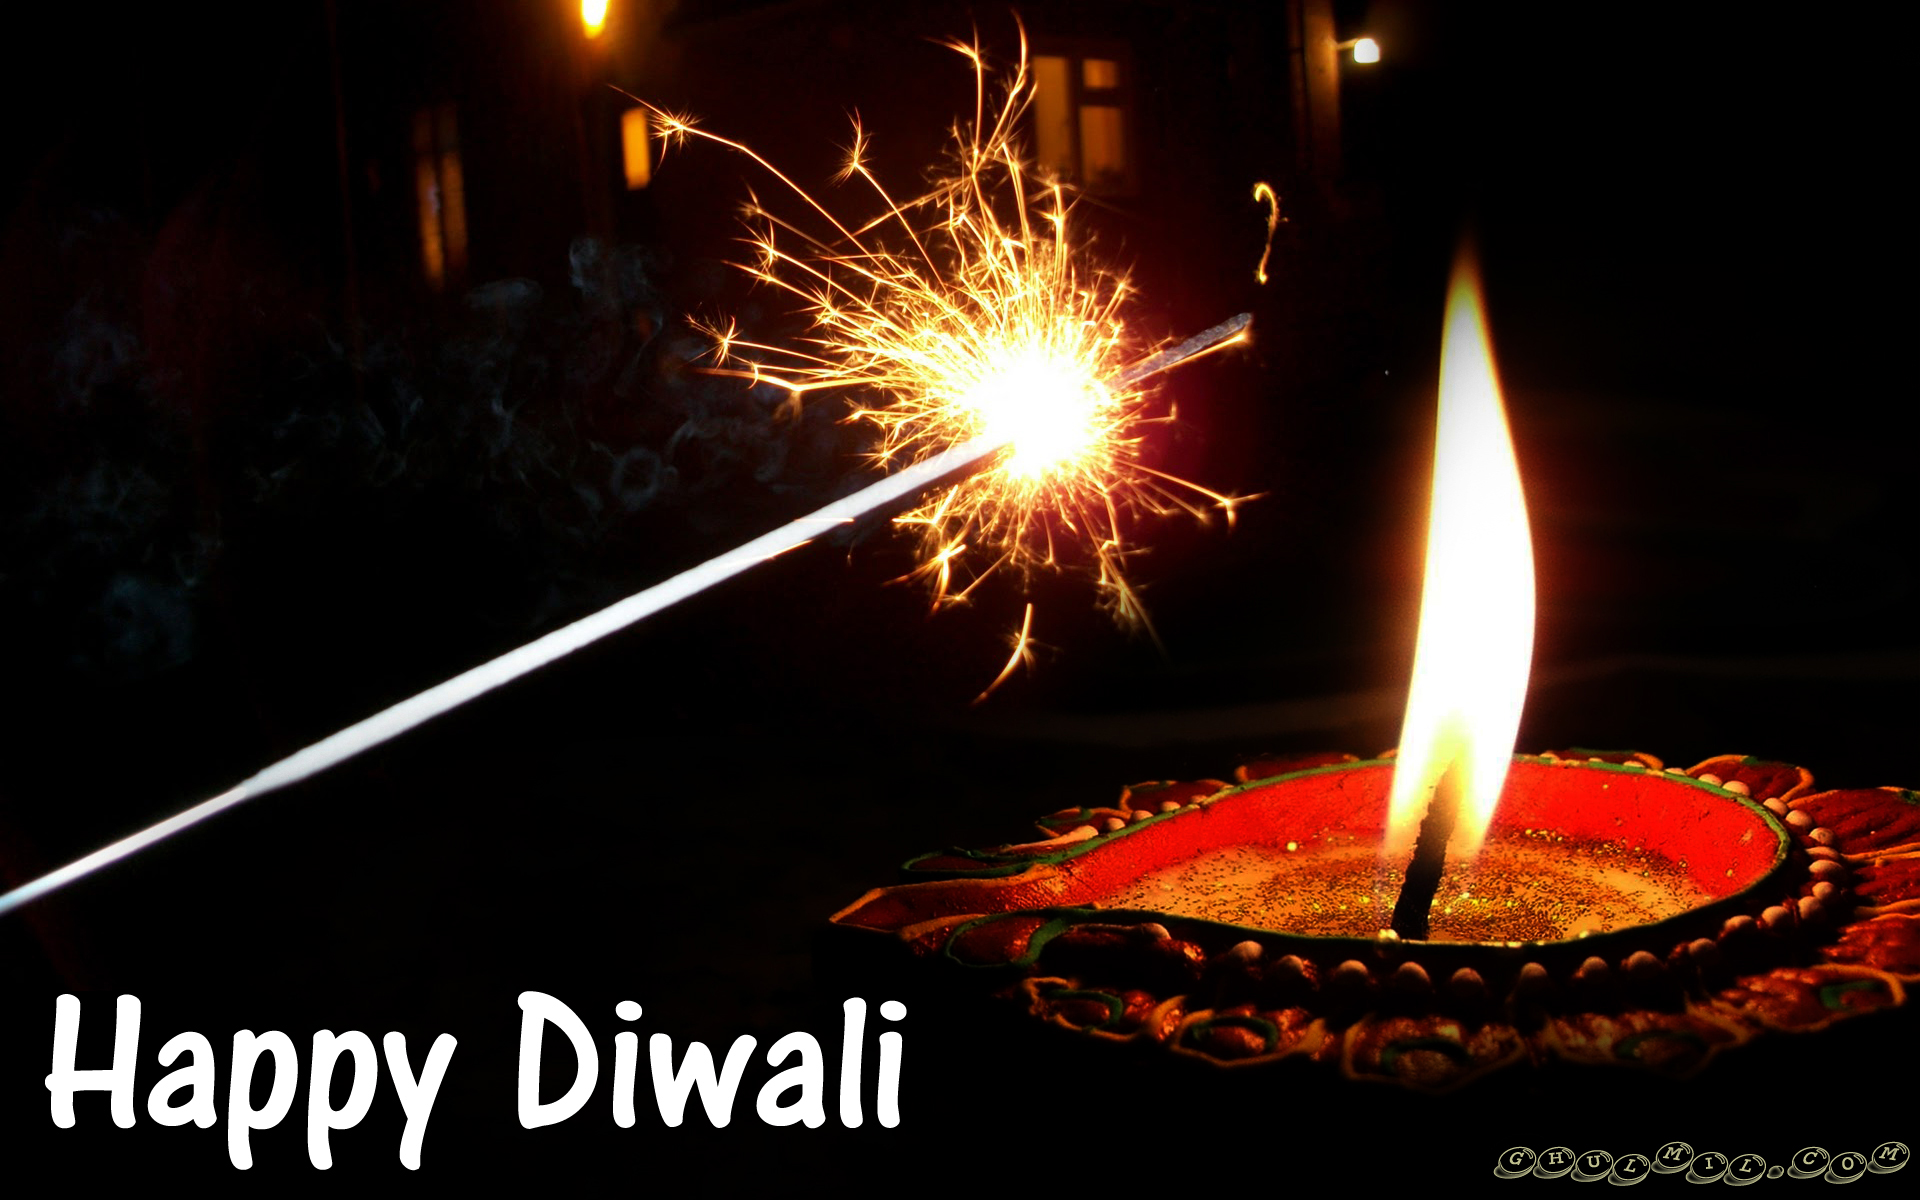 Happy Diwali Wallpapers And Backgrounds: Download Free Download Happy Diwali Wallpapers Gallery